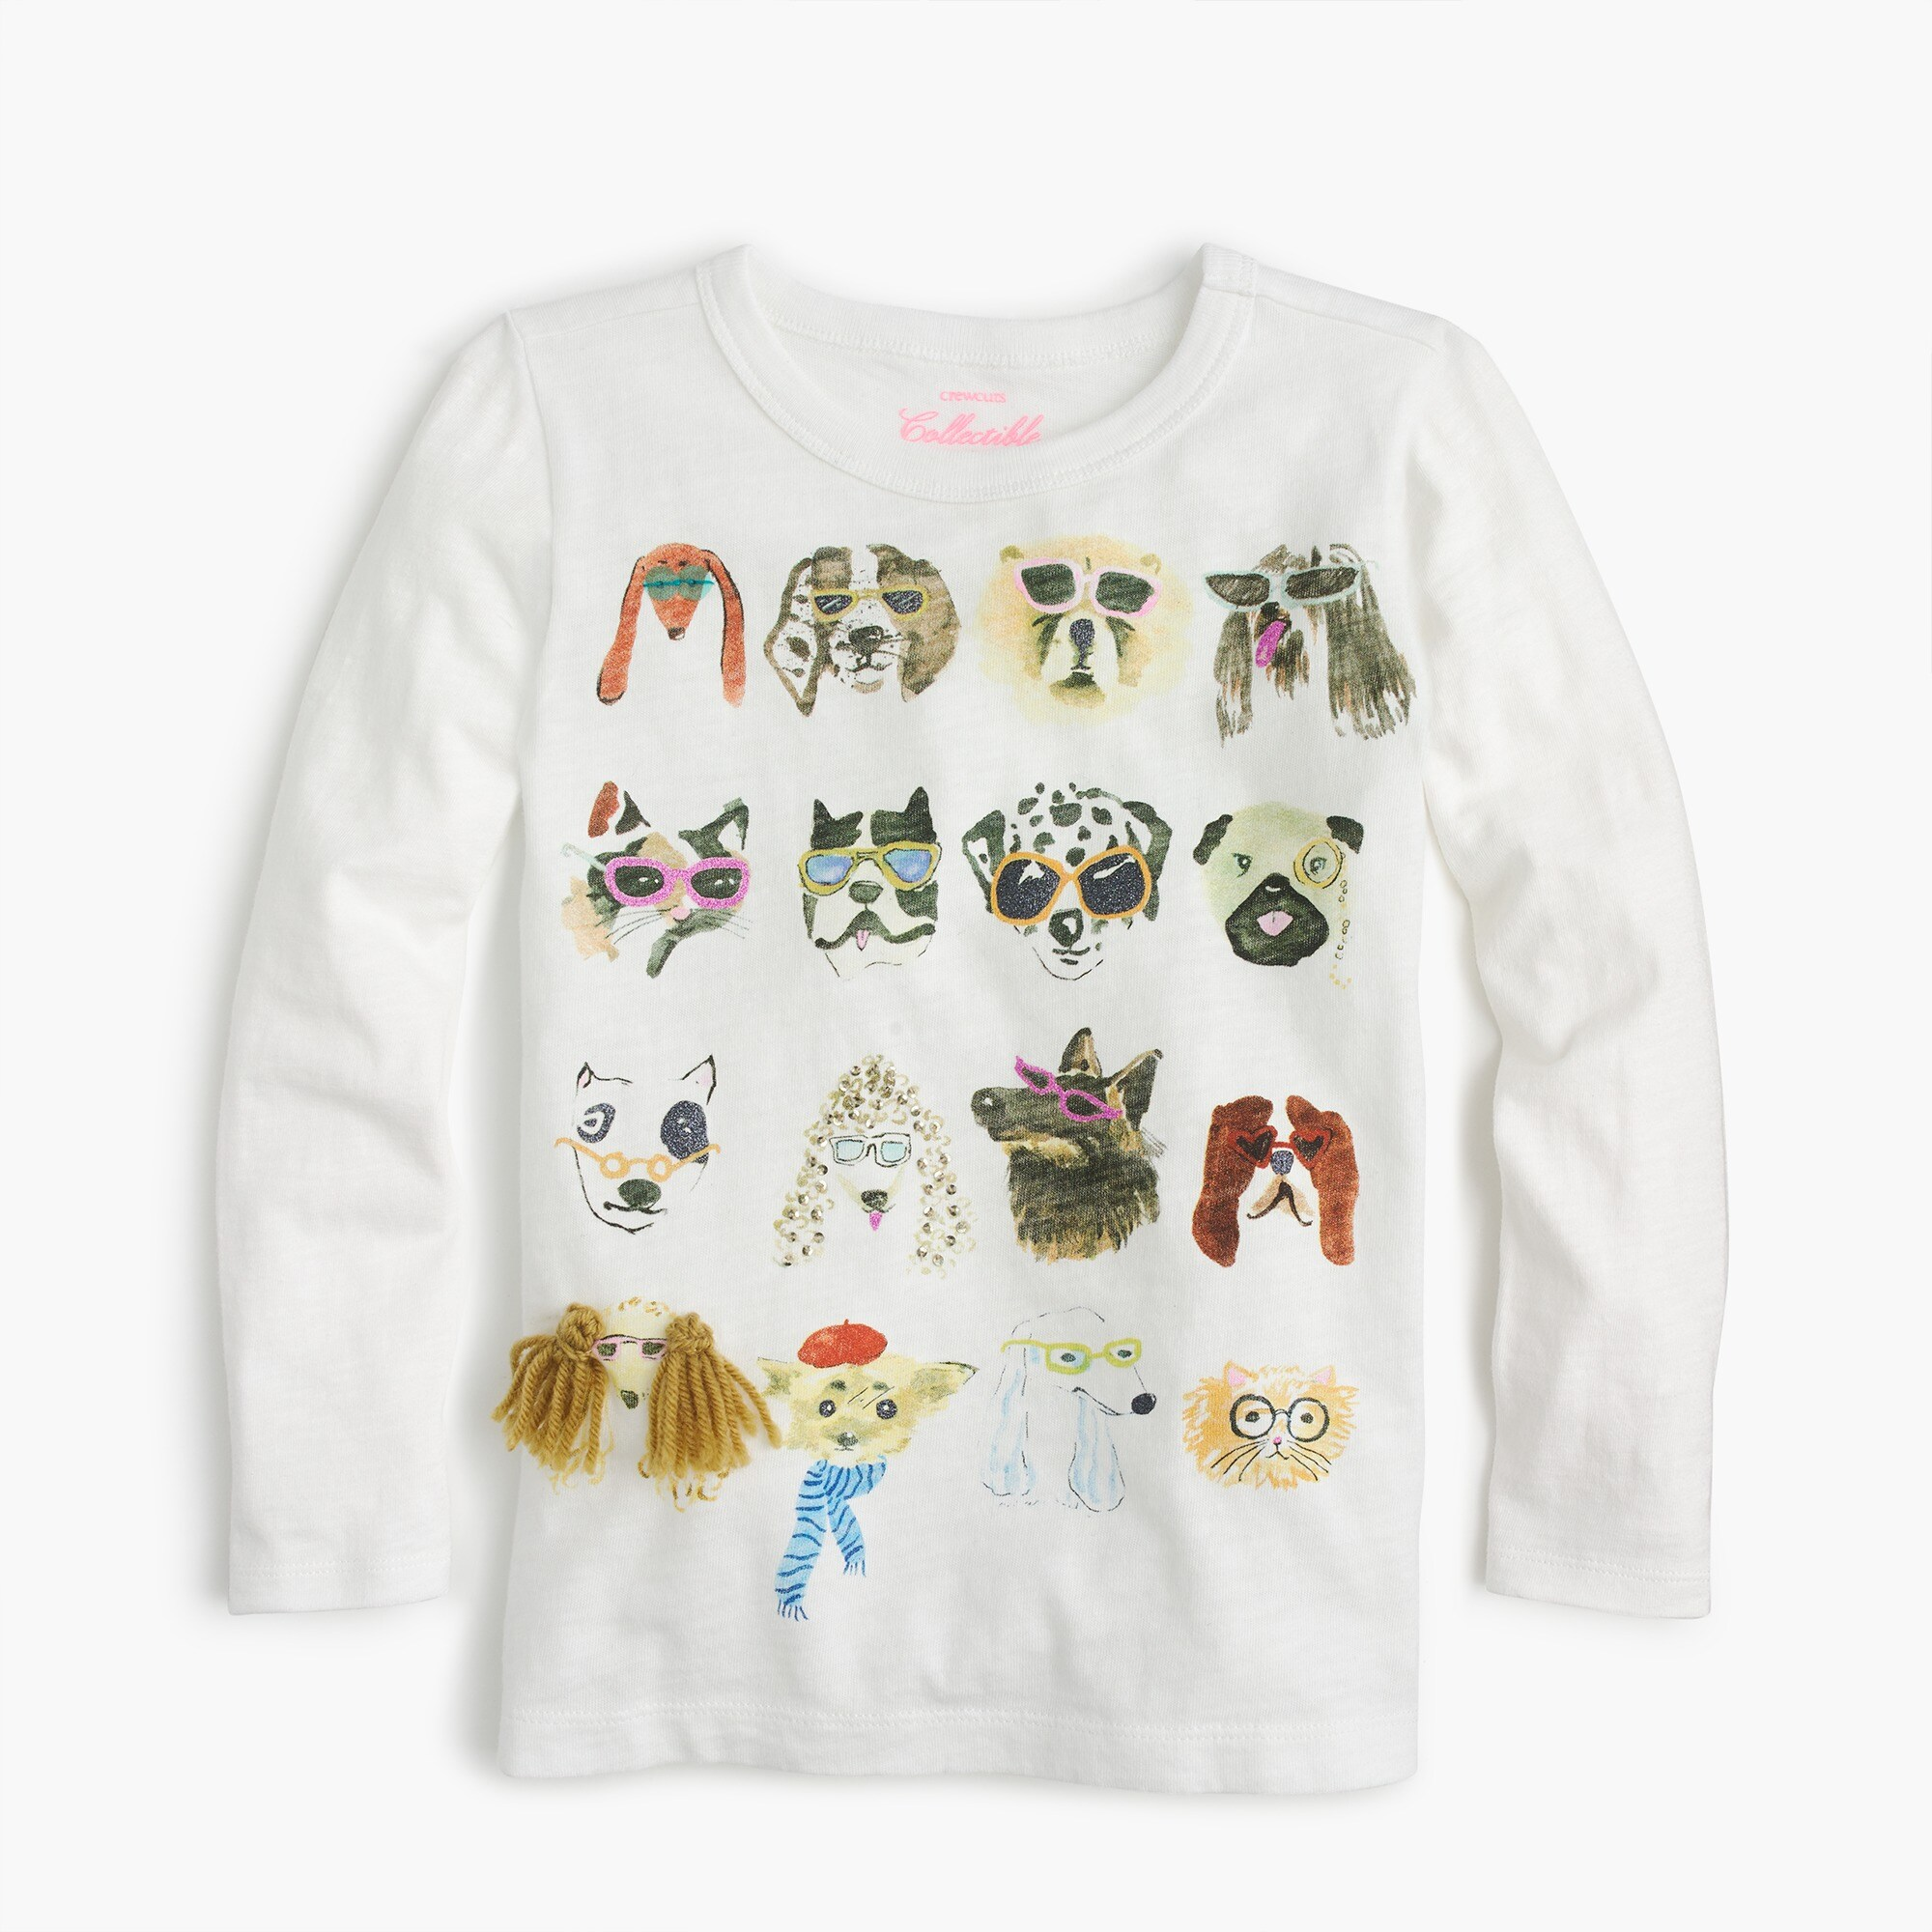 Girl's dogs in specs T-shirt girl new arrivals c